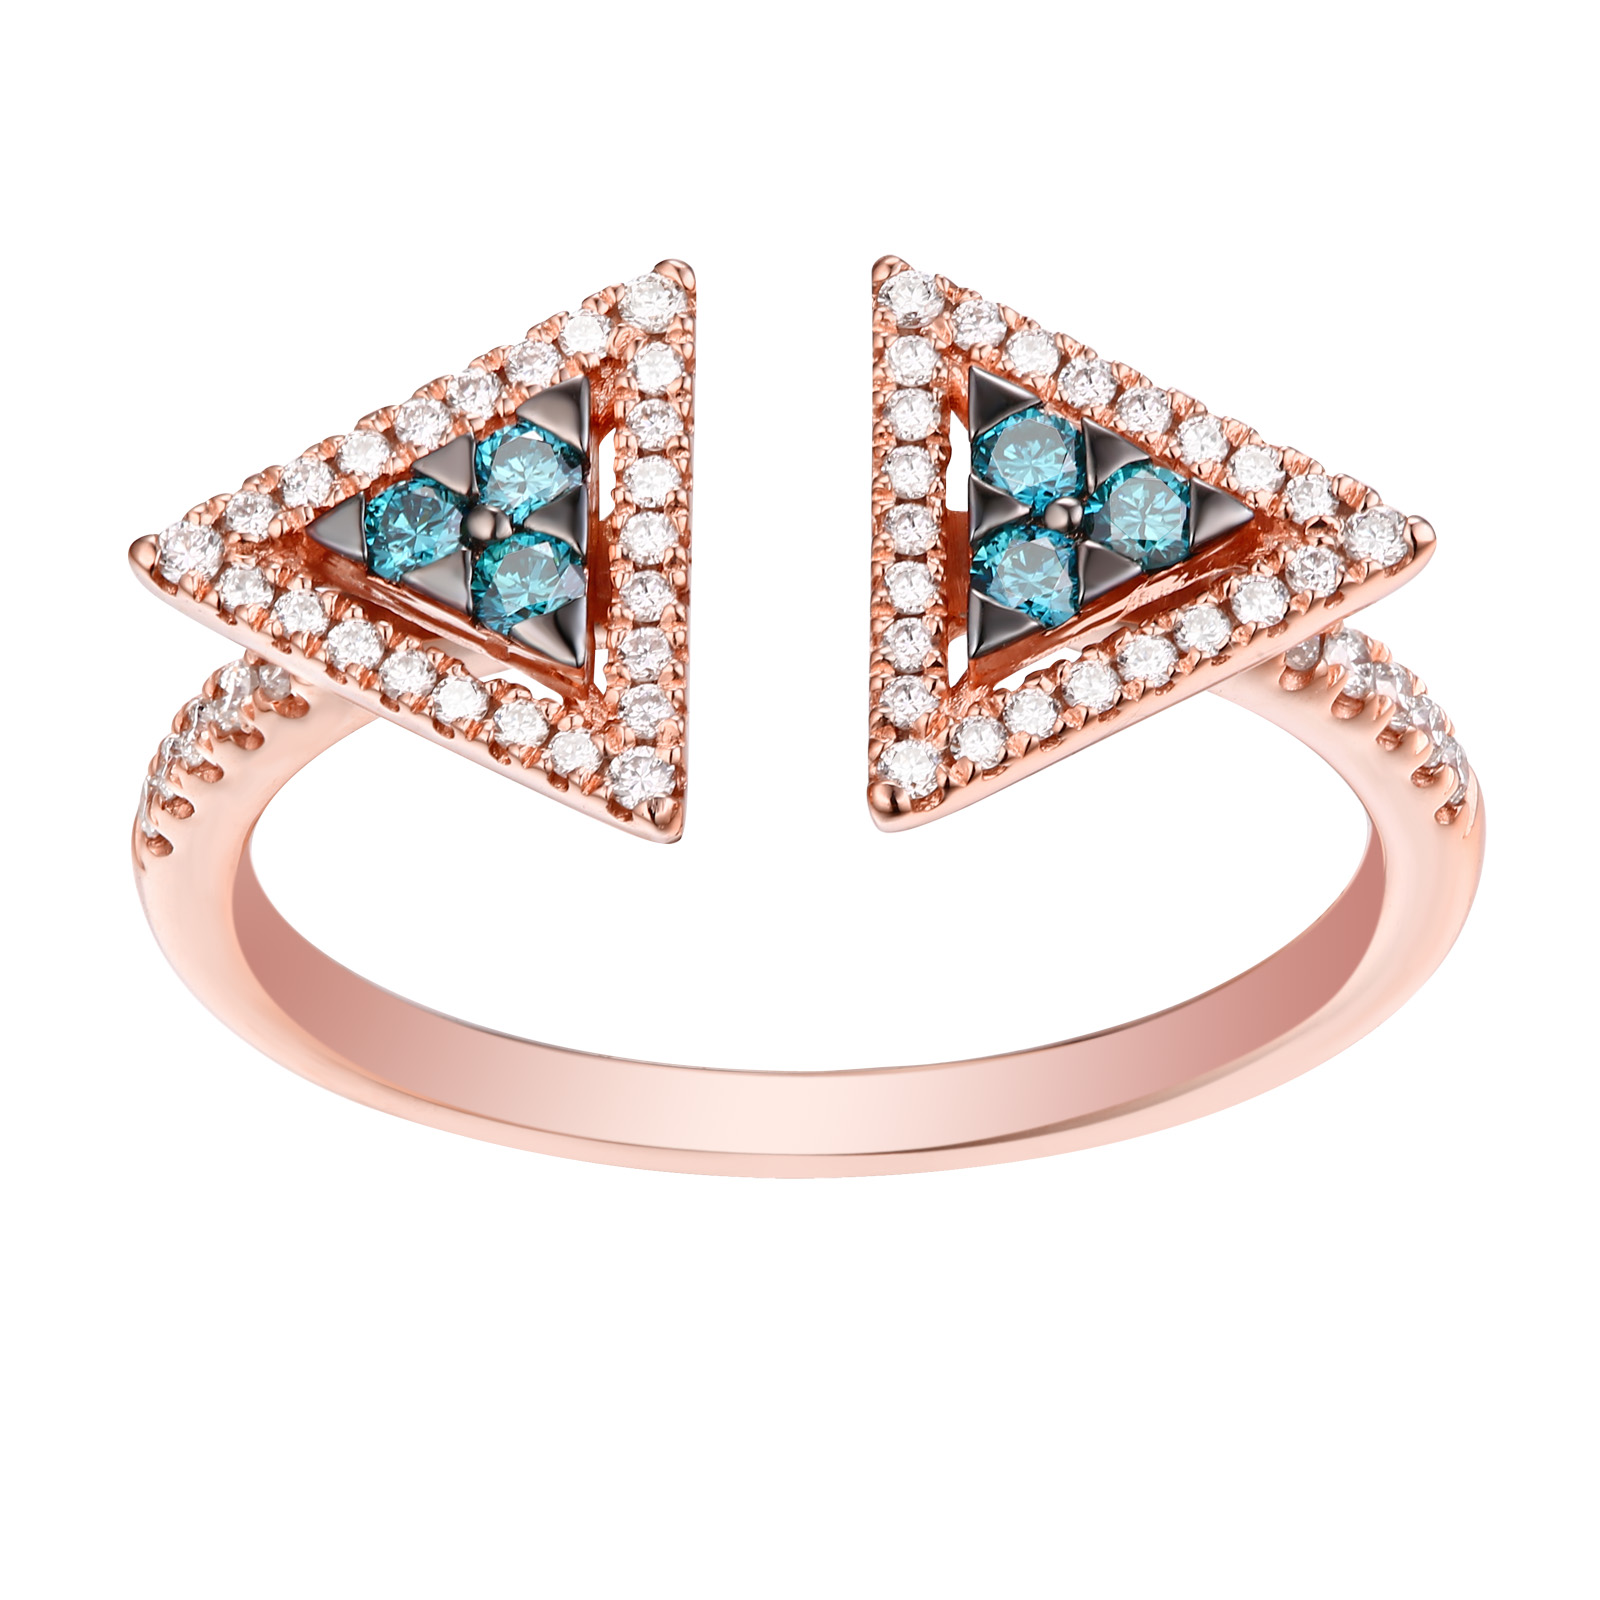 R25083ICE- 14K Rose Gold Diamond Ring, 0.36 TCW